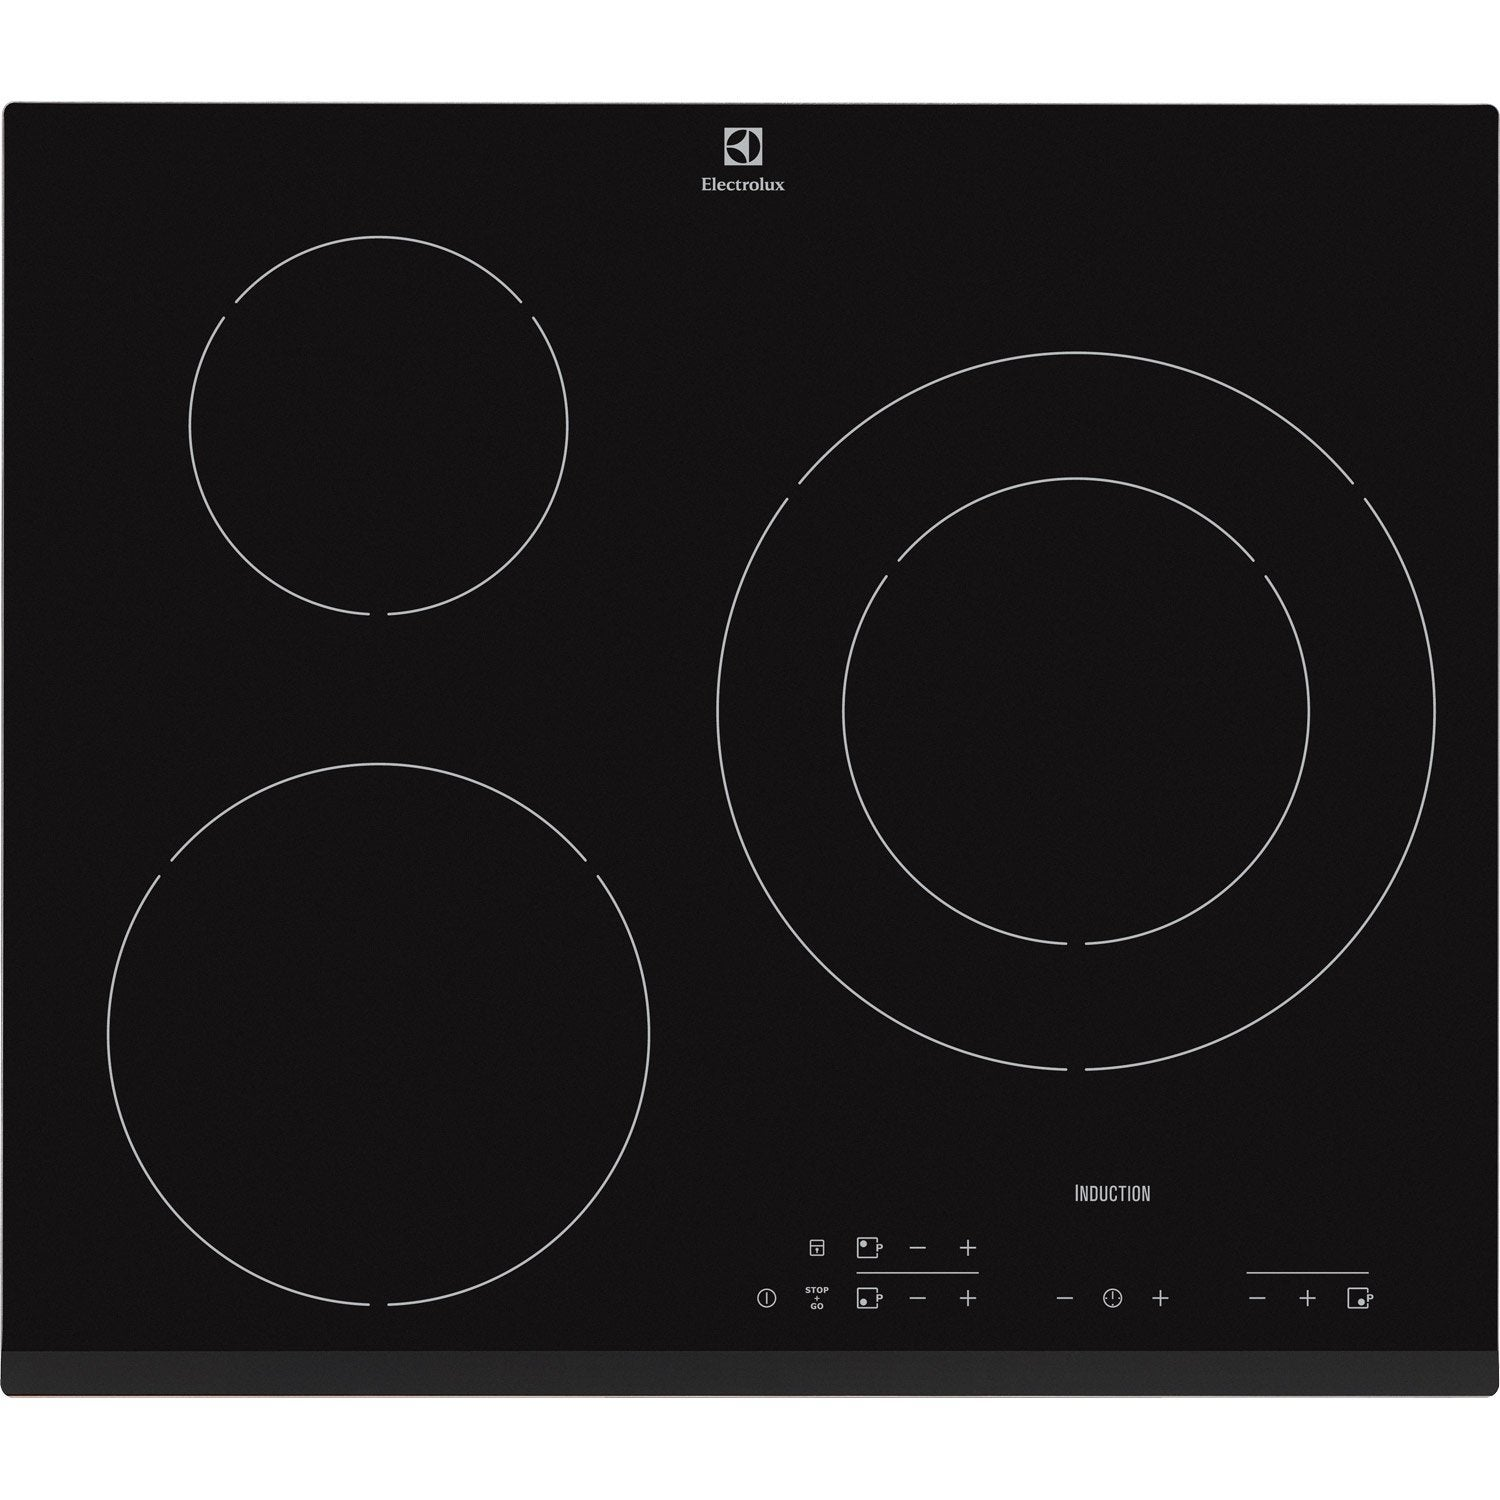 Plaque induction electrolux e6223hfk 3 foyers leroy merlin - Plaque a induction 2 feux ...